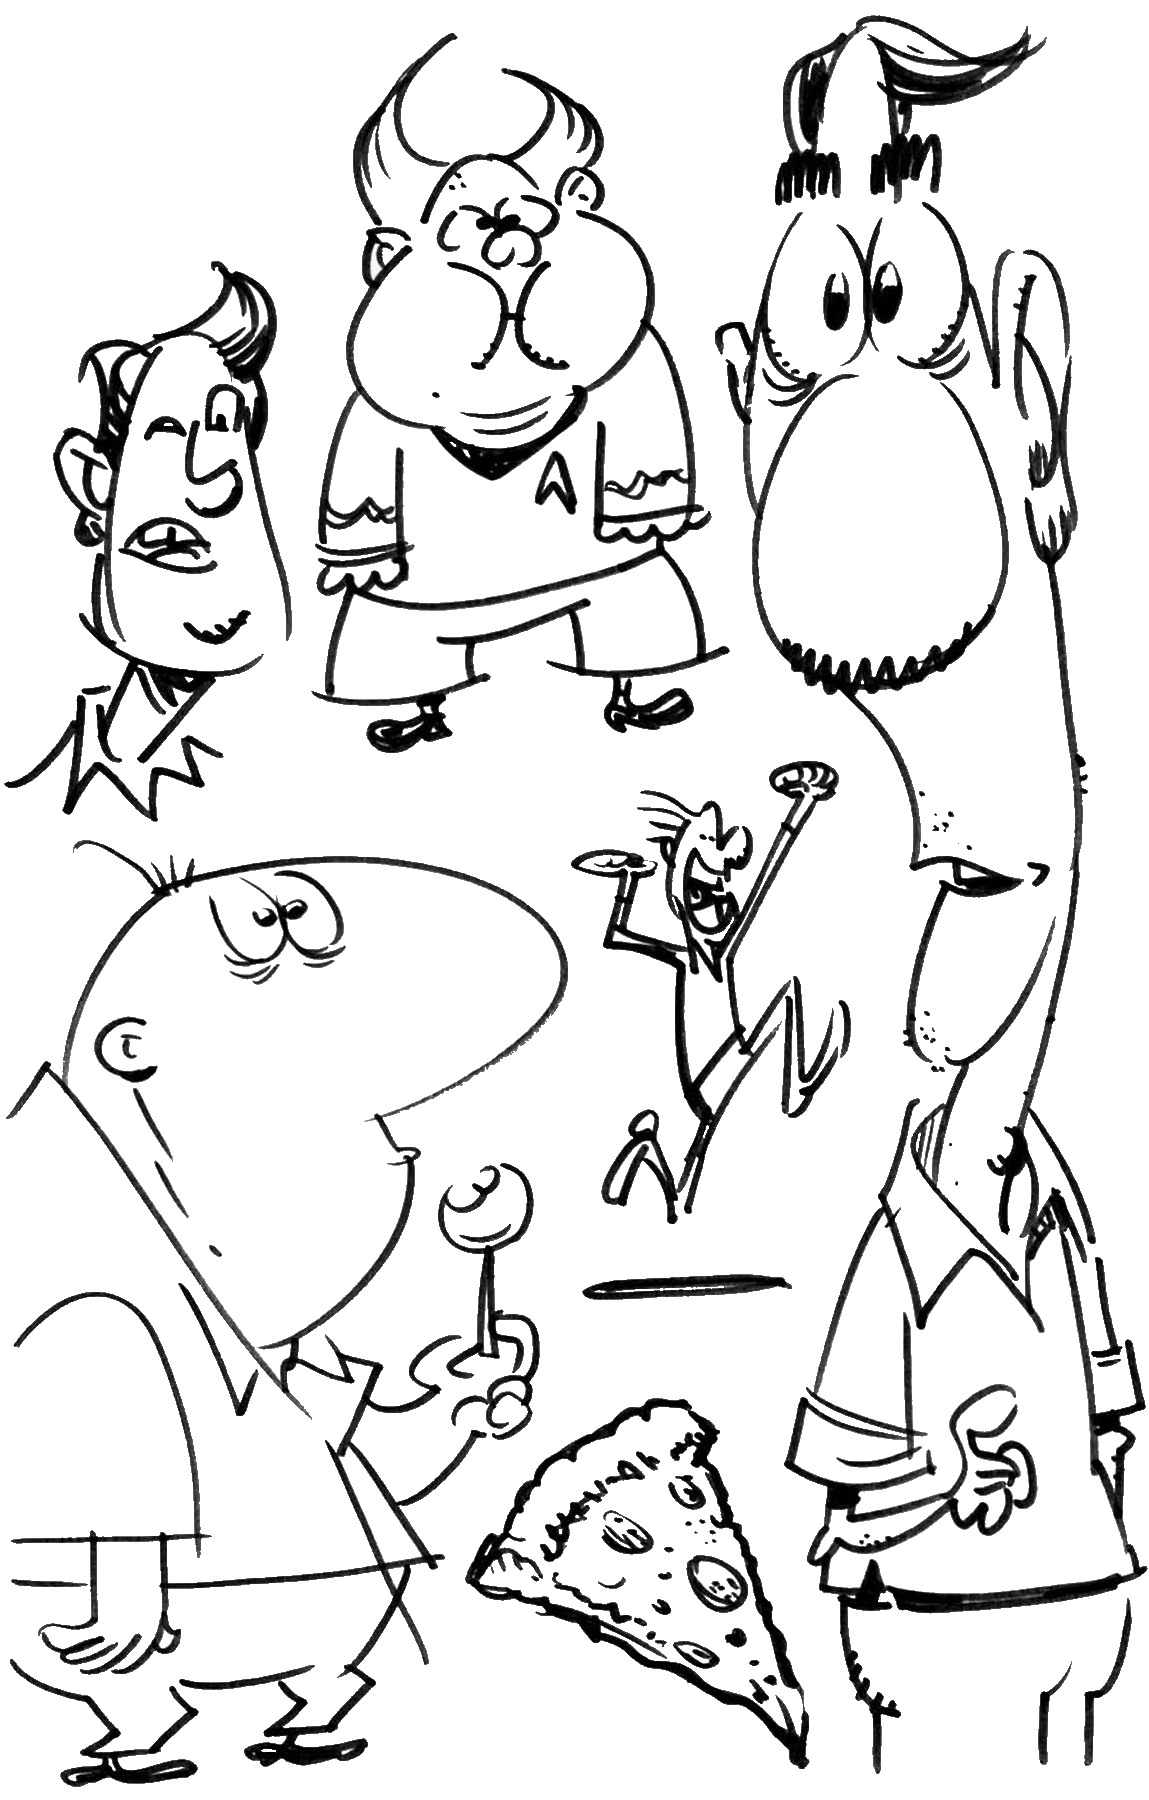 Phineas and Ferb Coloring Pages